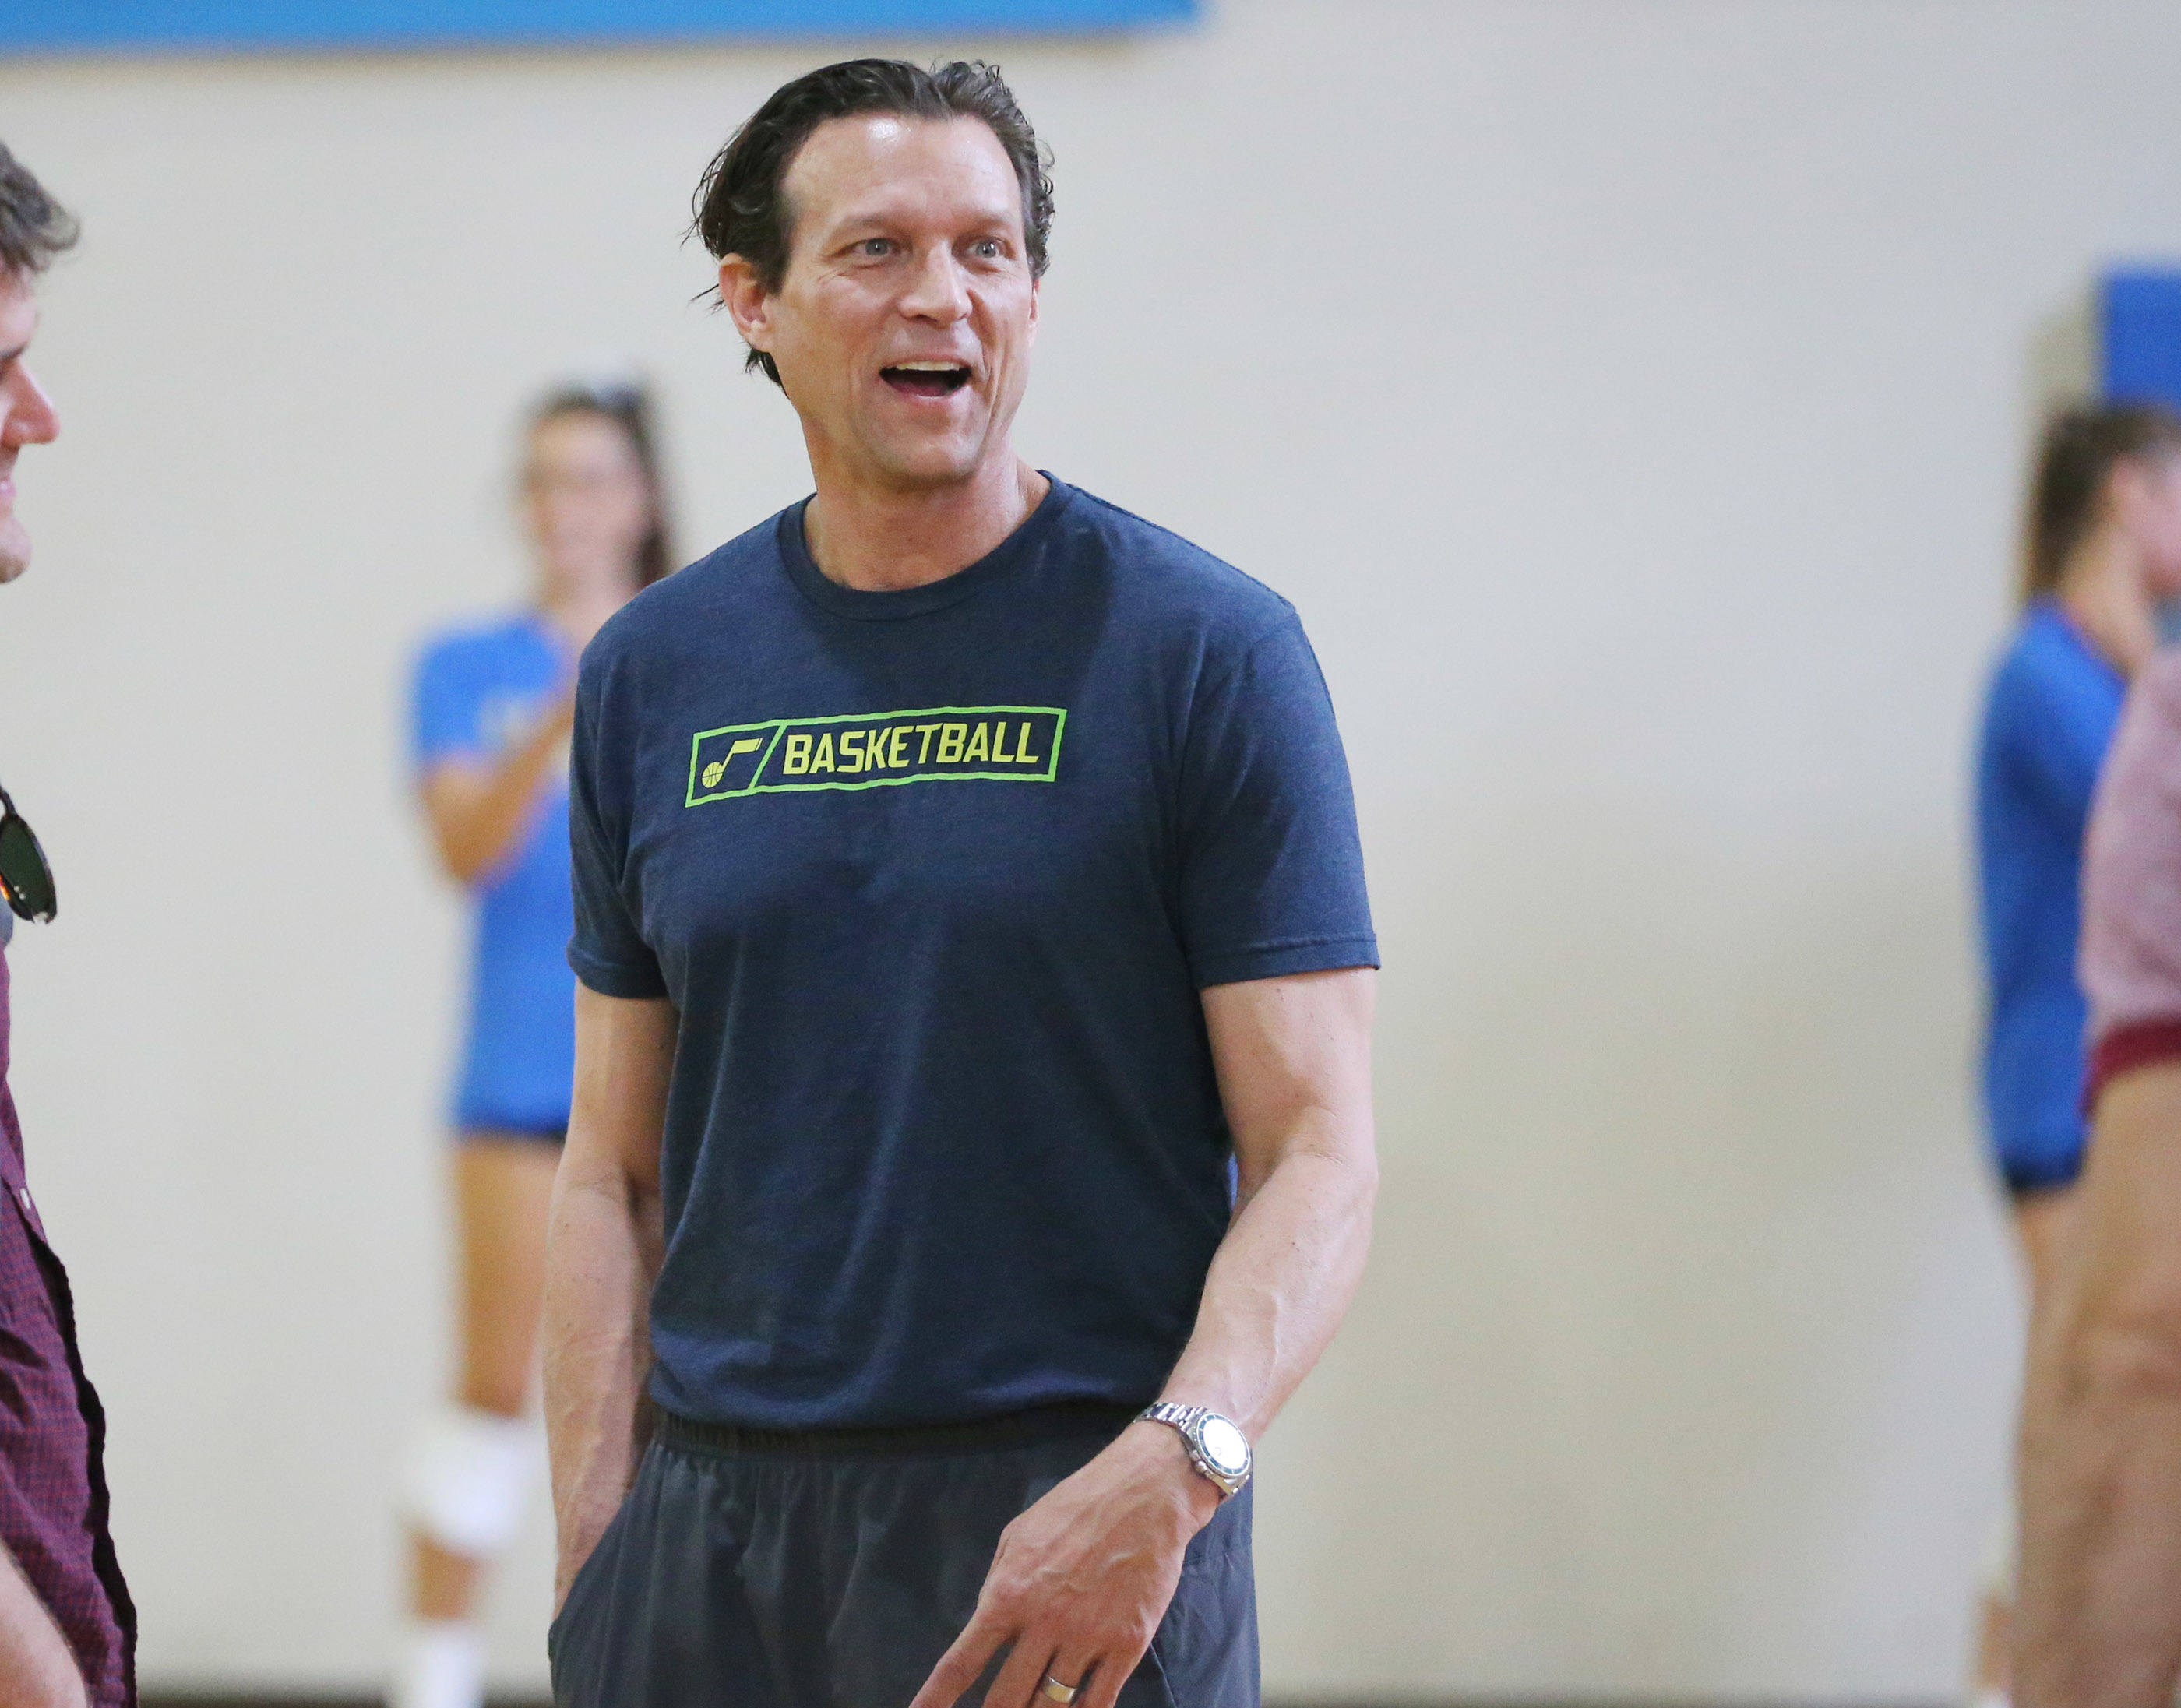 Utah Jazz head coach Quin Snyder talks after practice at UCLA in Los Angeles on Monday, April 17, 2017.